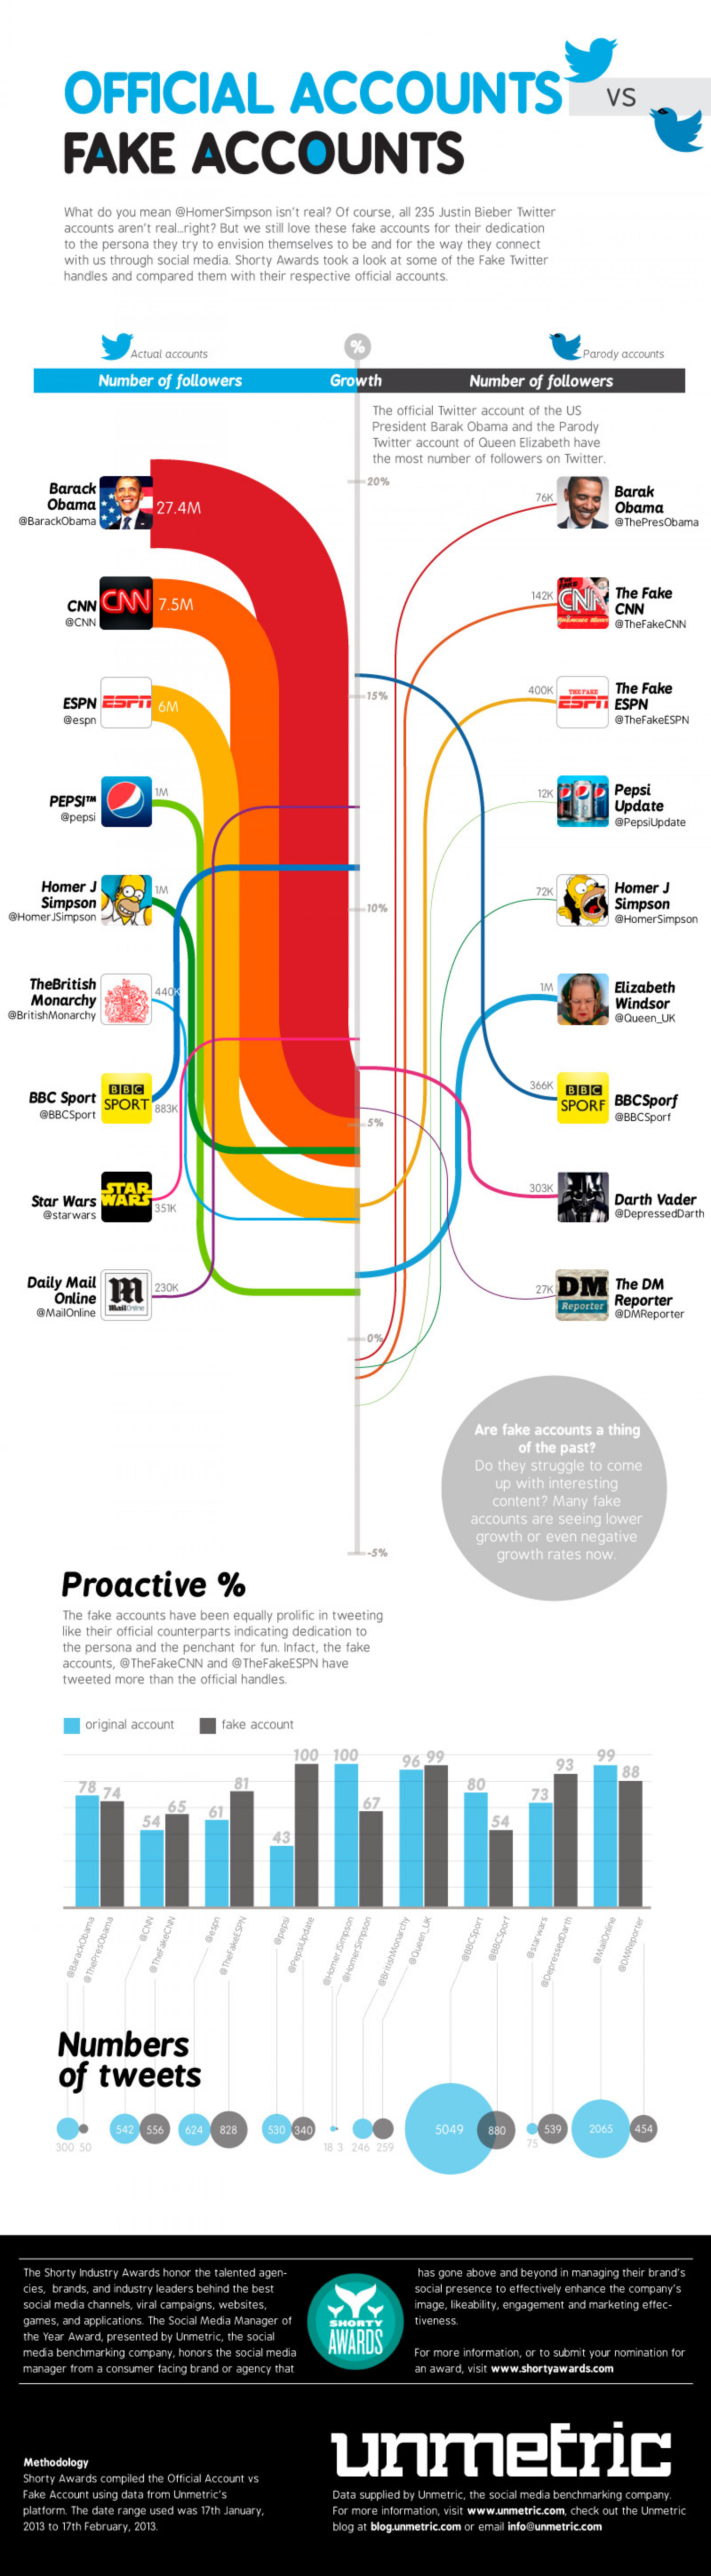 Throwdown Between Official and Fake Twitter Accounts of the Famous Infographic